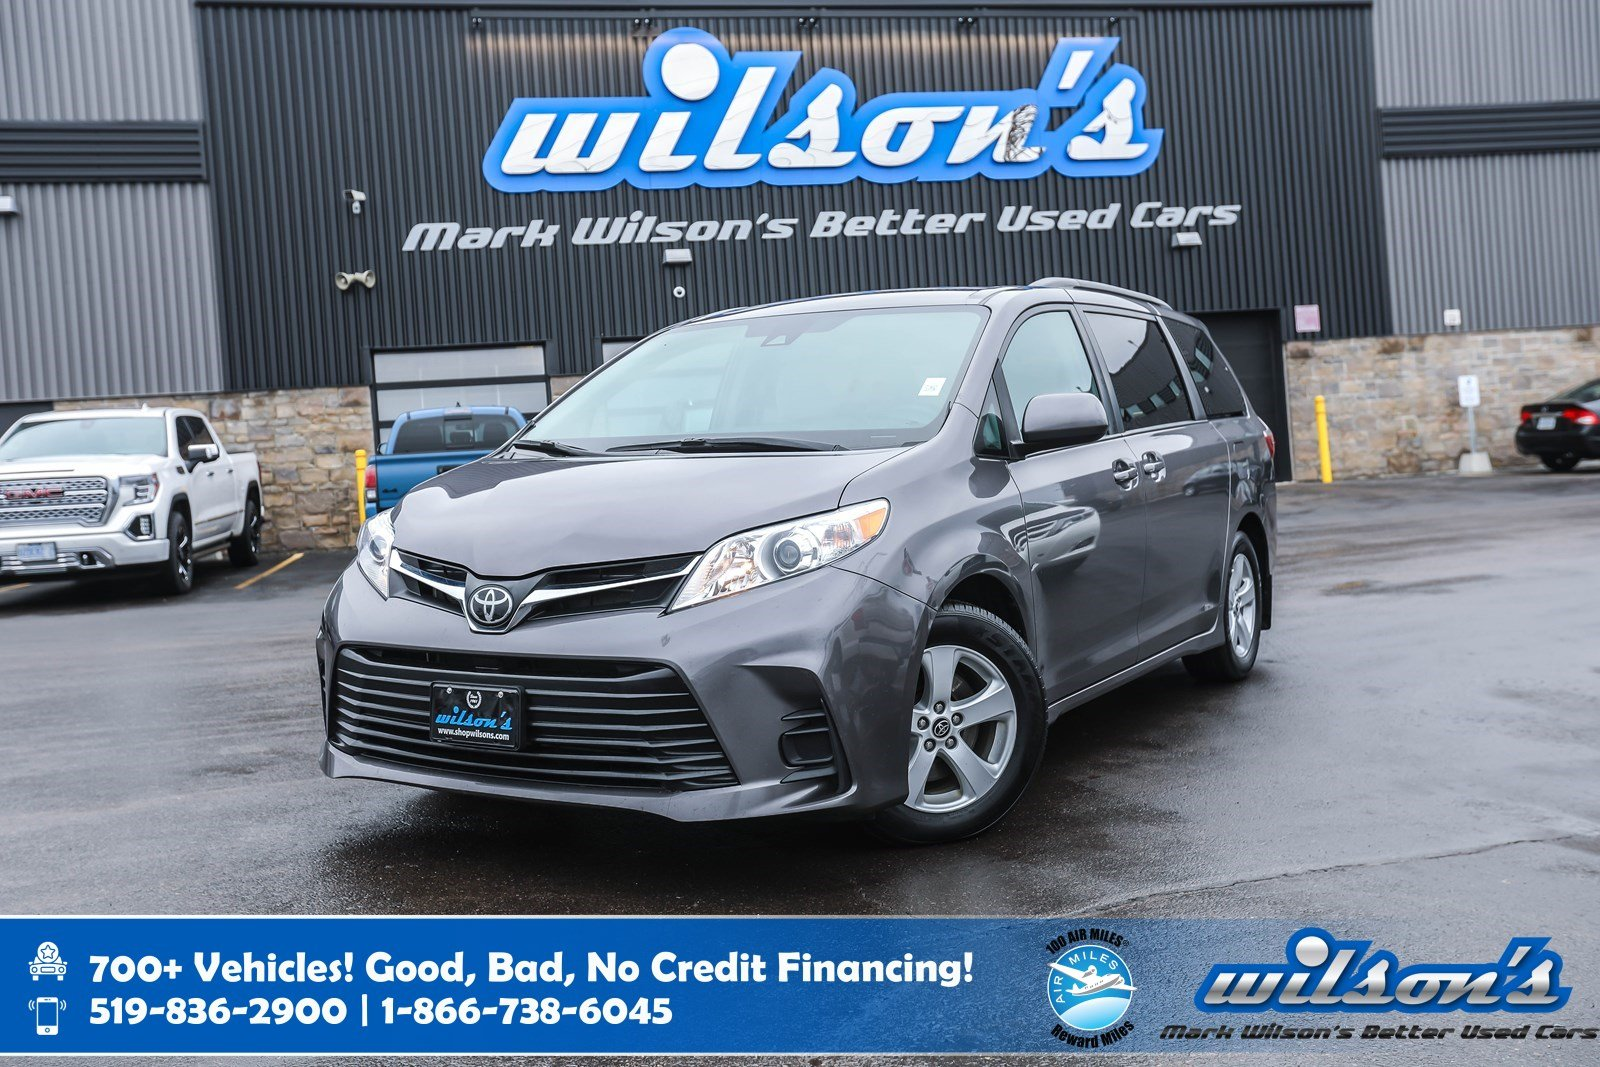 Certified Pre-Owned 2019 Toyota Sienna LE Apple CarPlay, Heated Seats, Power Sliding Doors, Toyota SafetySense, Bluetooth 8 Pass, and more!